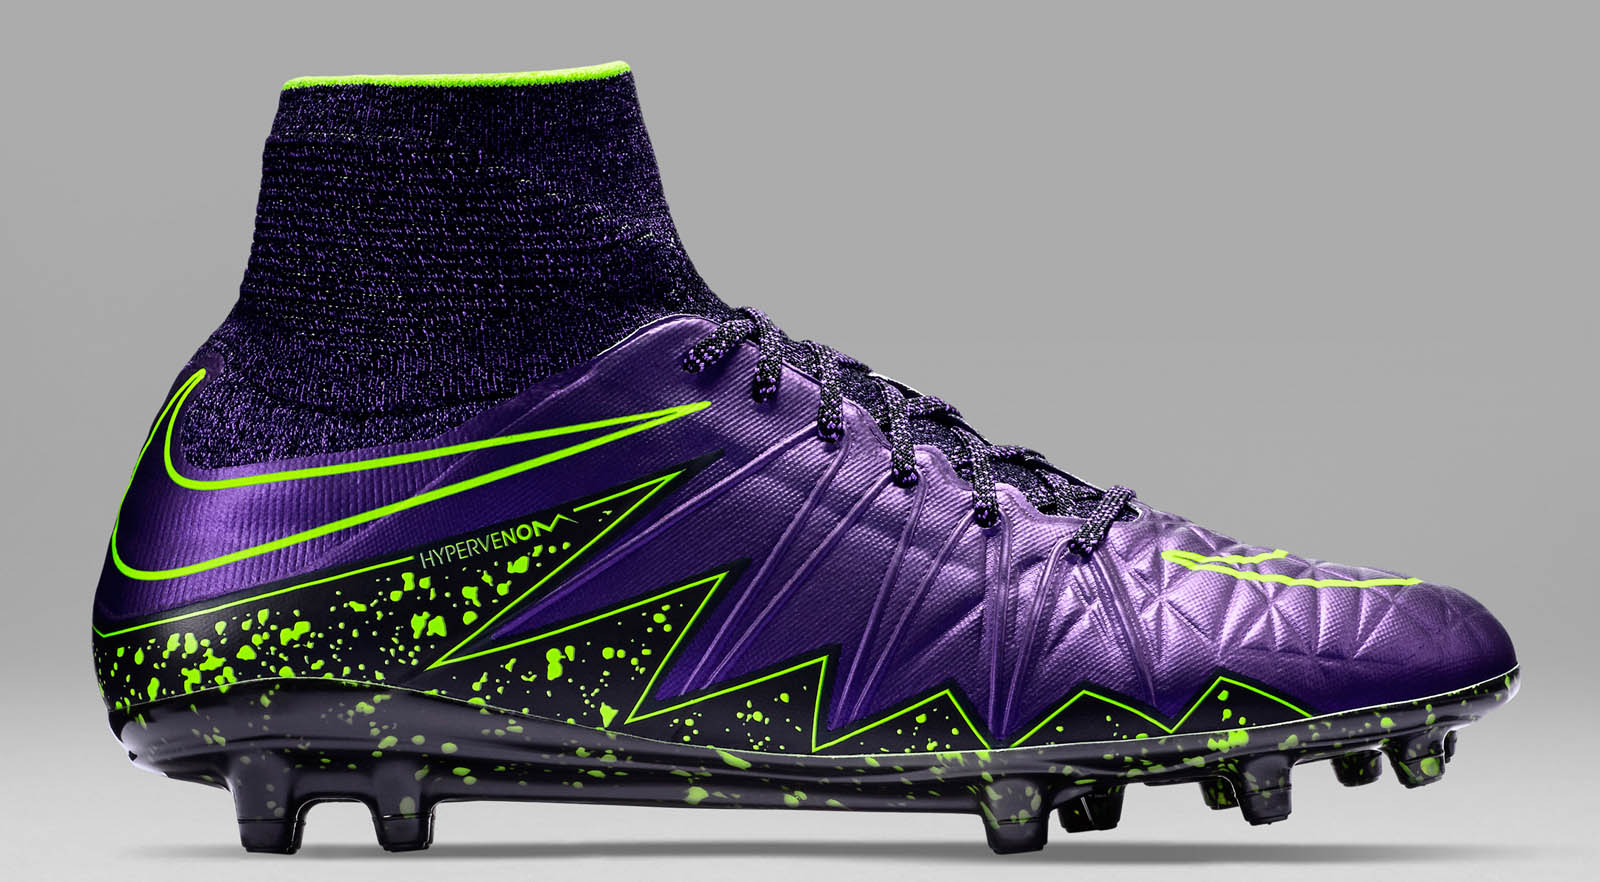 purple nike hypervenom 2 2015 2016 boots released footy. Black Bedroom Furniture Sets. Home Design Ideas